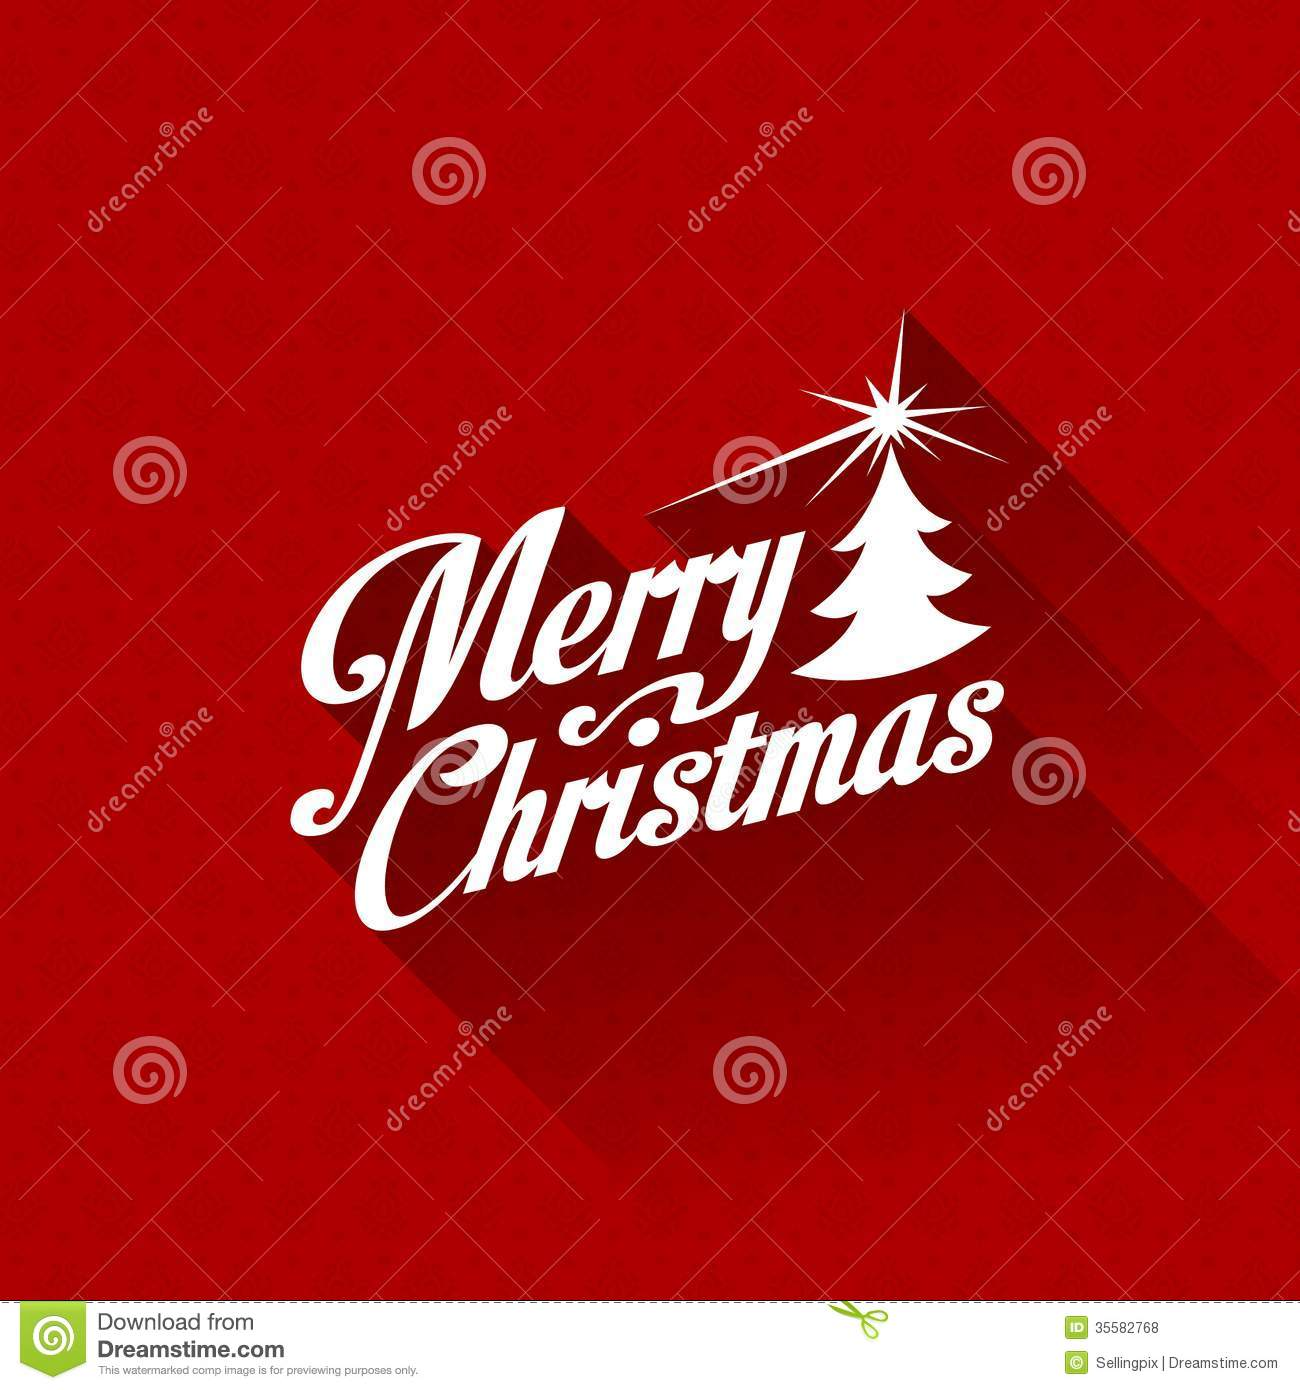 Merry Christmas Greeting Card Vector Design Templa Royalty Free Stock 228N6FoE